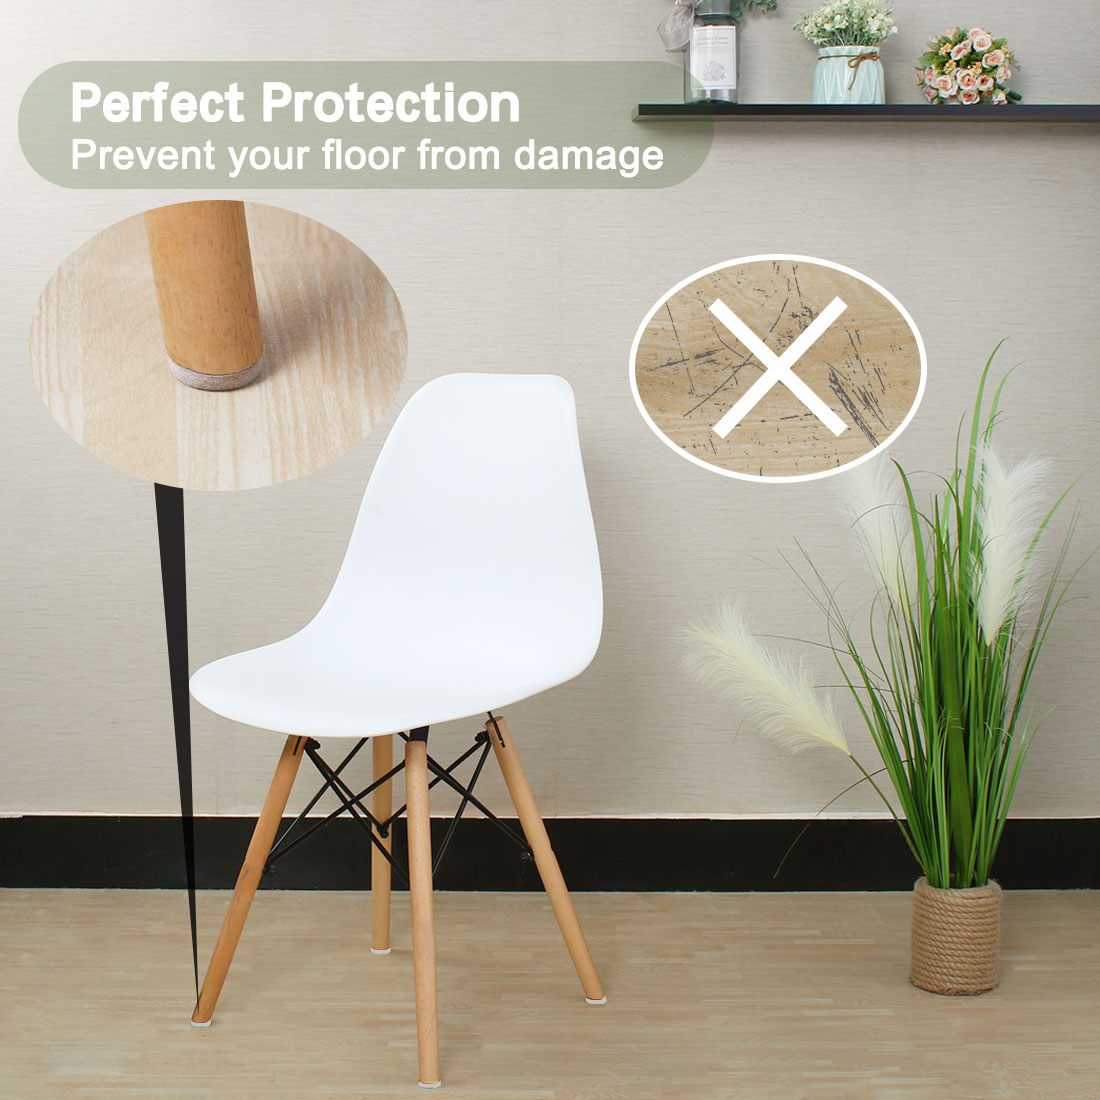 "Furniture Pads Round 1 1/2"" Self-stick Anti-scratch Table Floor Protector 36pcs - image 6 de 7"